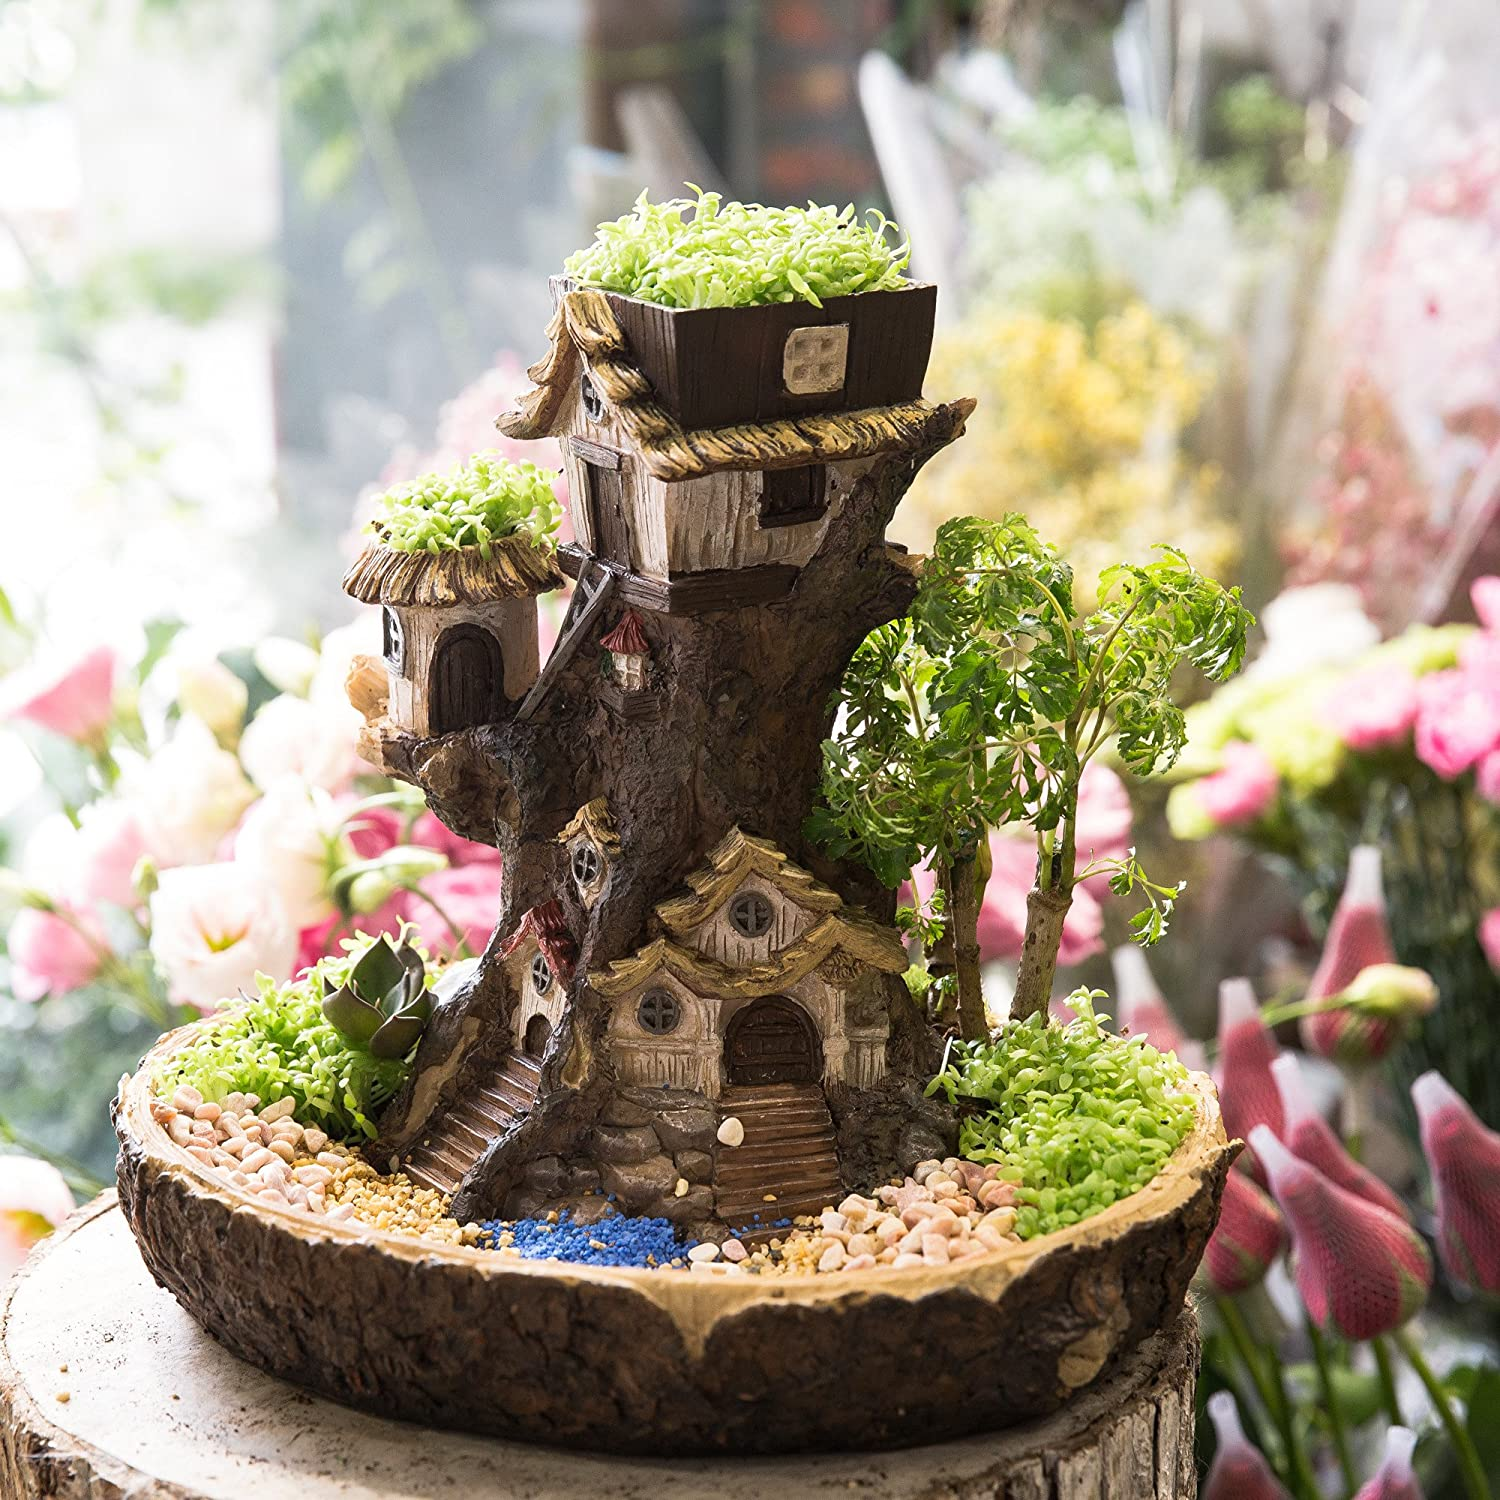 VOSAREA Fairy Garden Planter House Resin Fairy Forest Mulit Layer Decroative Flower Pot with Sweet House for Succulents Cactus Small Flower